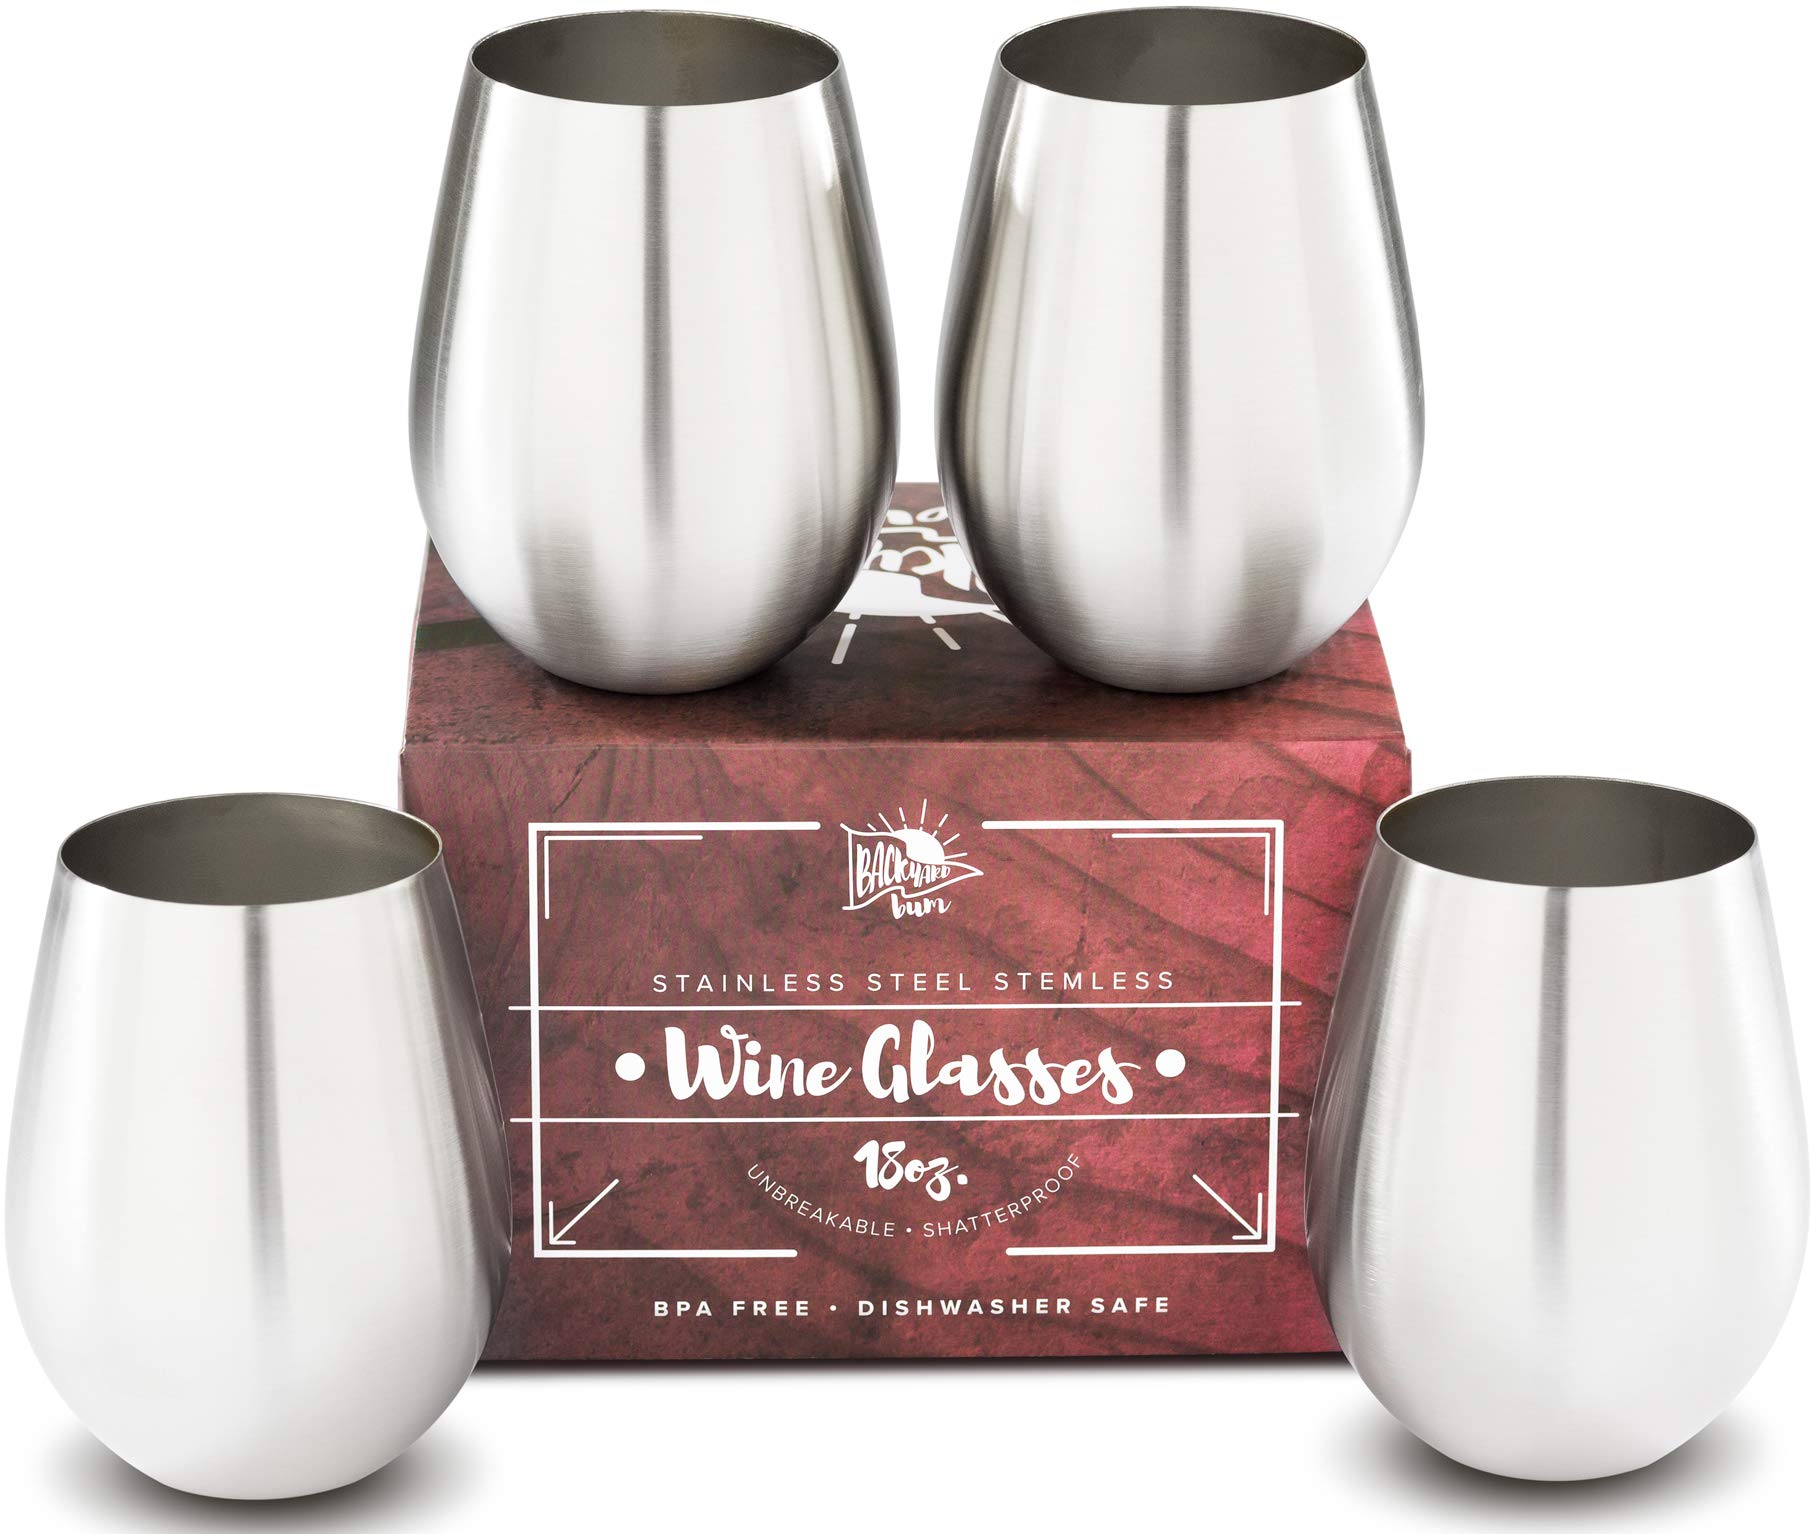 Premium Solid Stainless Steel Wine Glasses PLUS Recipe eBook   Stemless Wine Glass Set of 4, for Men and Women   Large 18 Ounce by Backyard Bum   Unbreakable and Tip Resistant for Perfect Entertaining